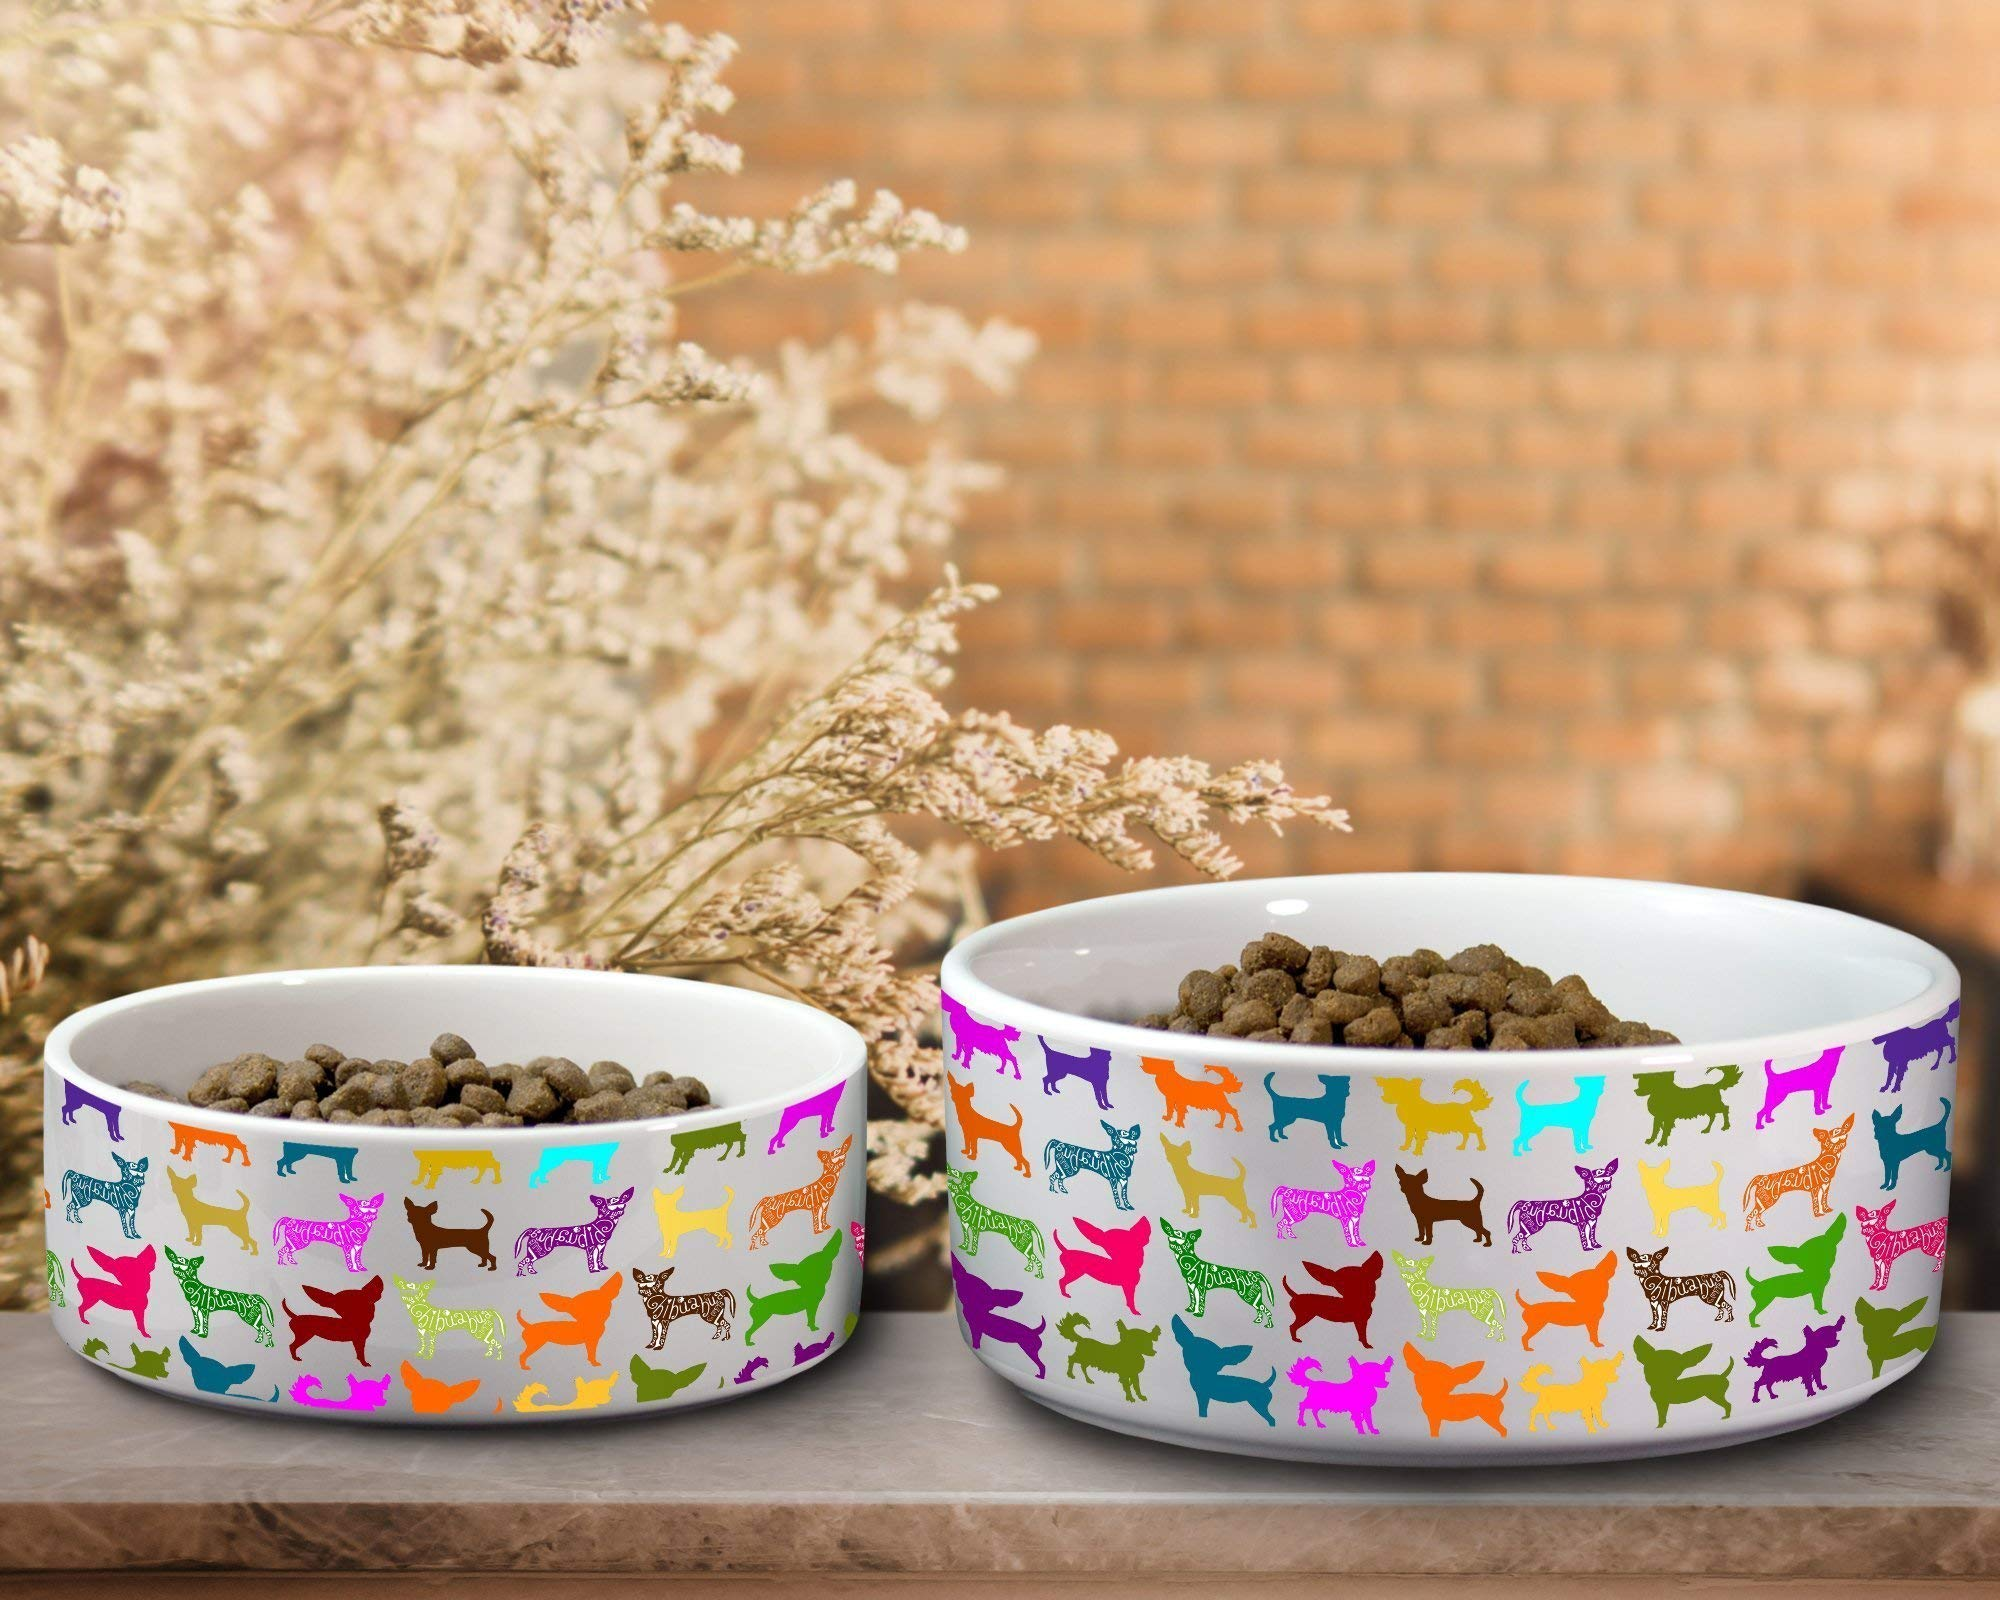 Chihuahua Colorful Ceramic Dog Water or Food Bowl - Small or Large Available